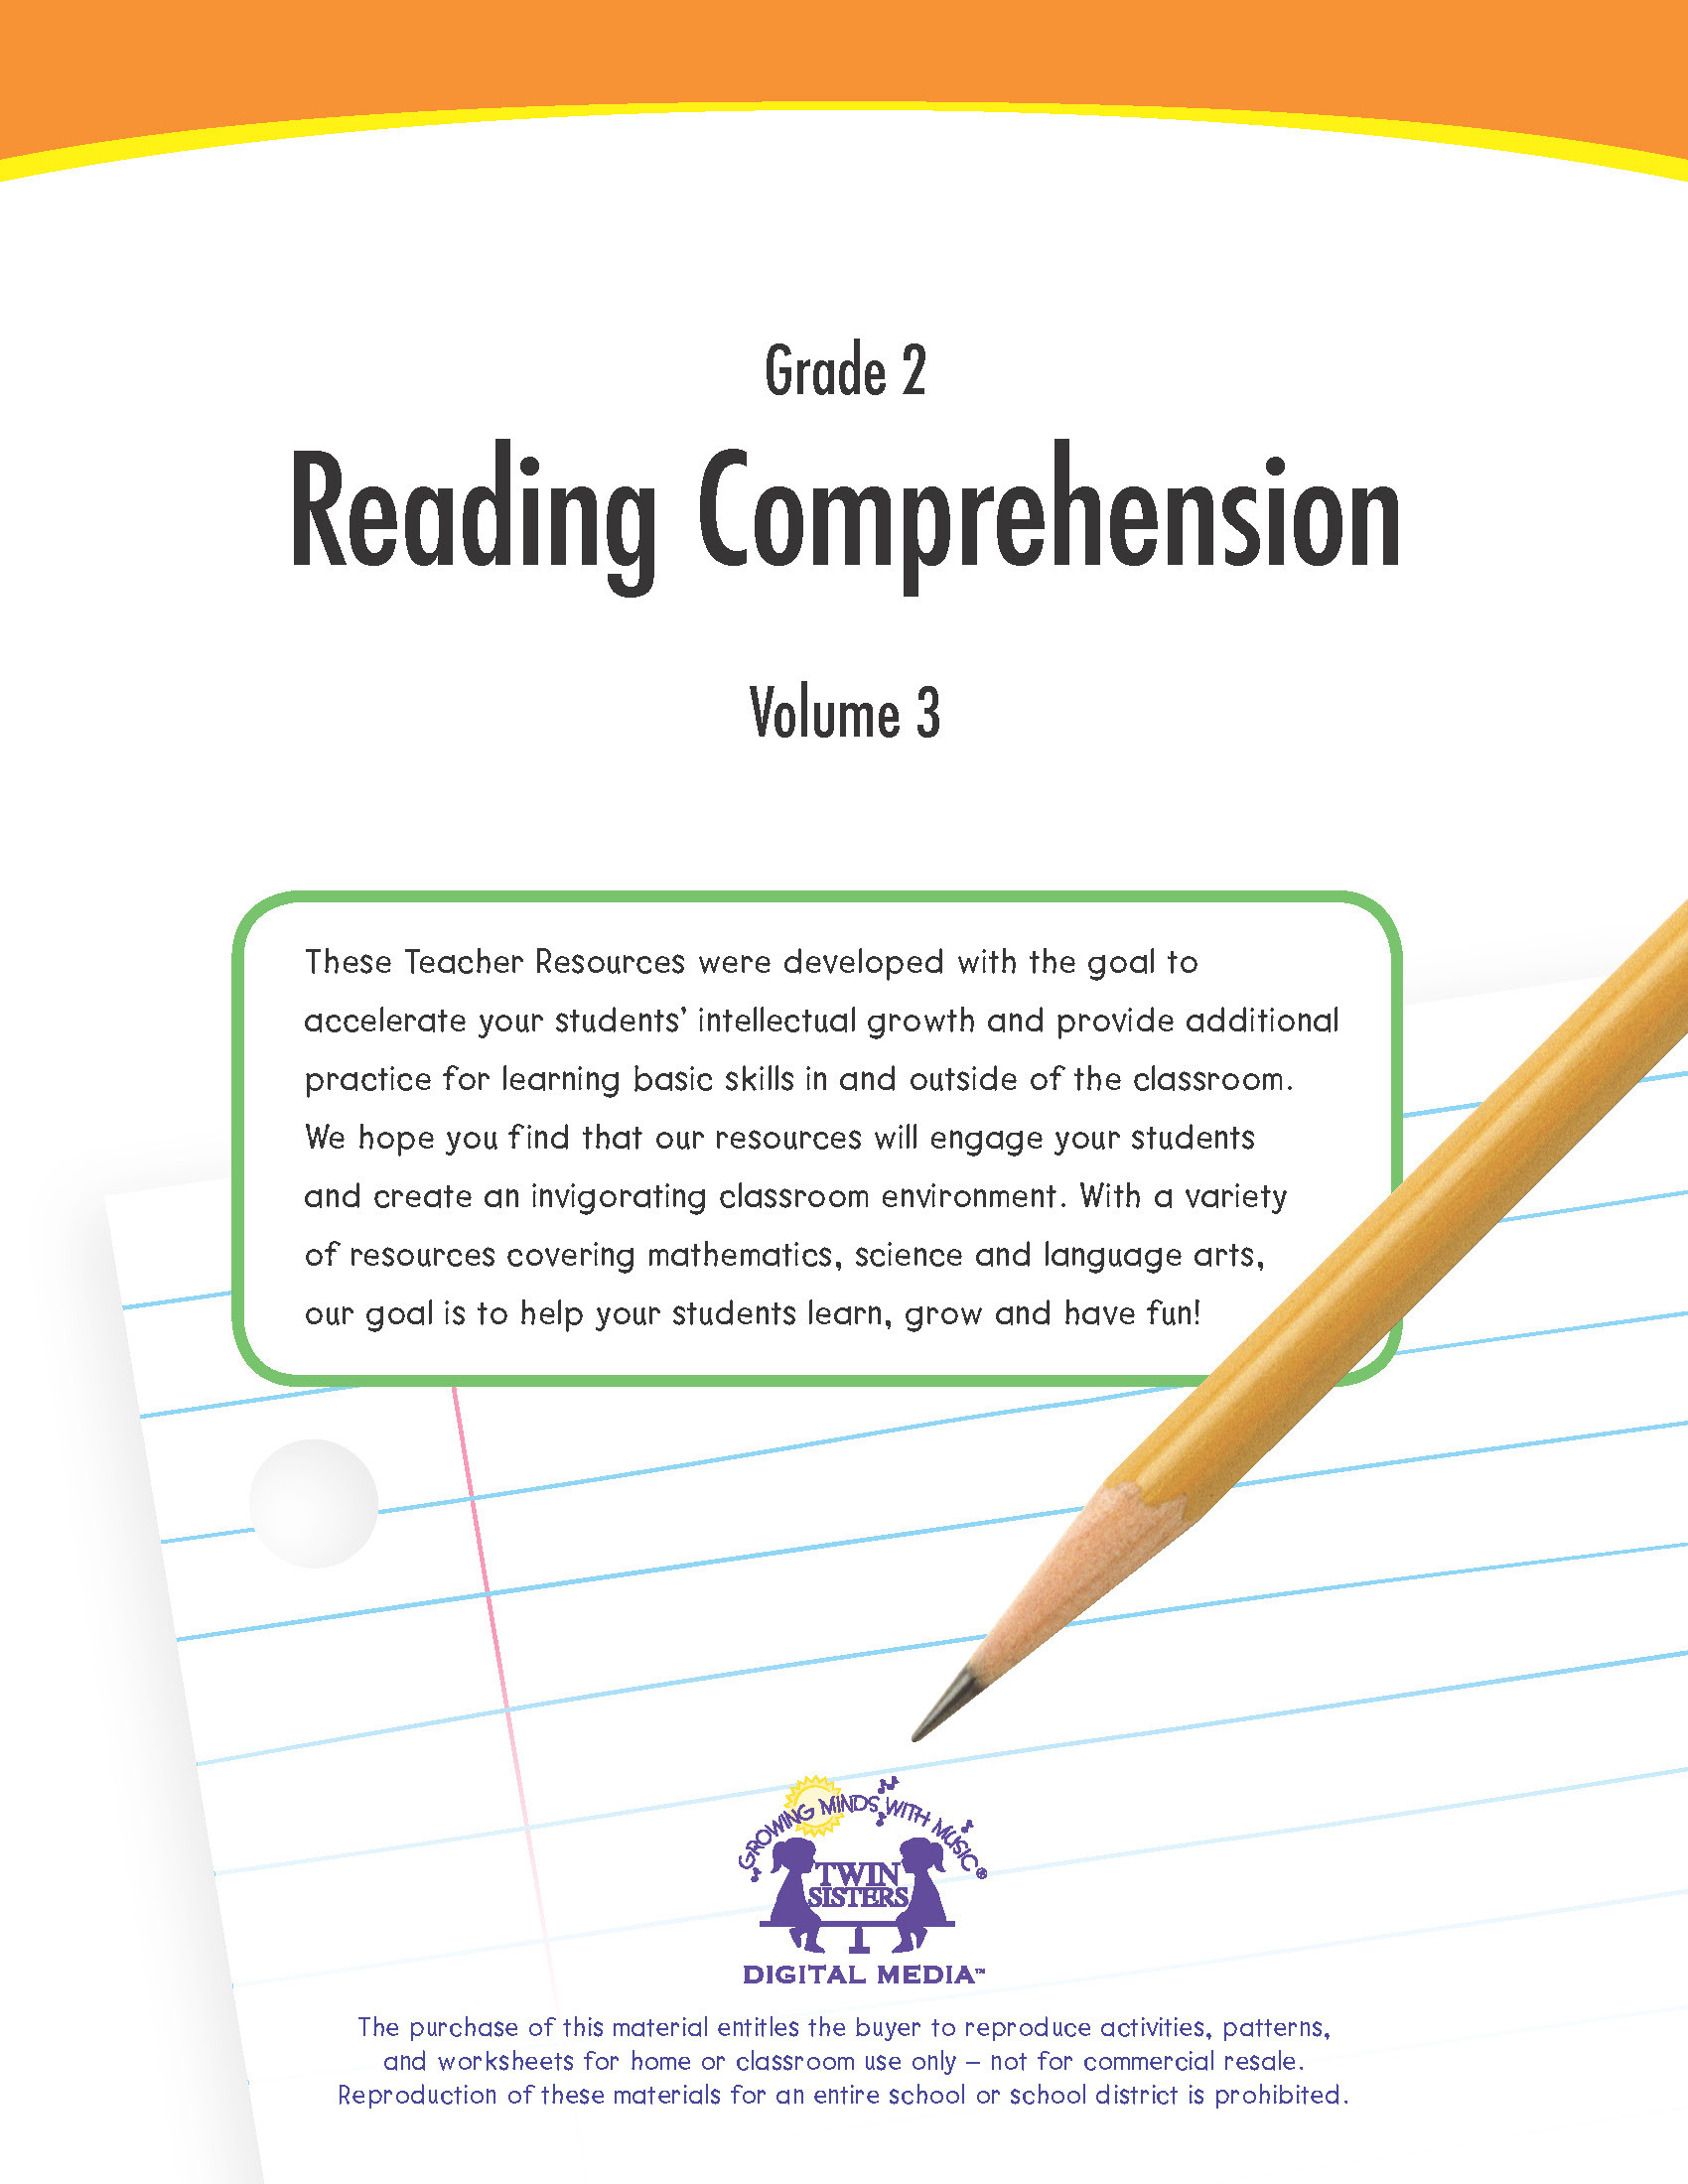 Grade 2 Reading Comprehension Worksheets Grade 2 Reading Prehension Volume 3